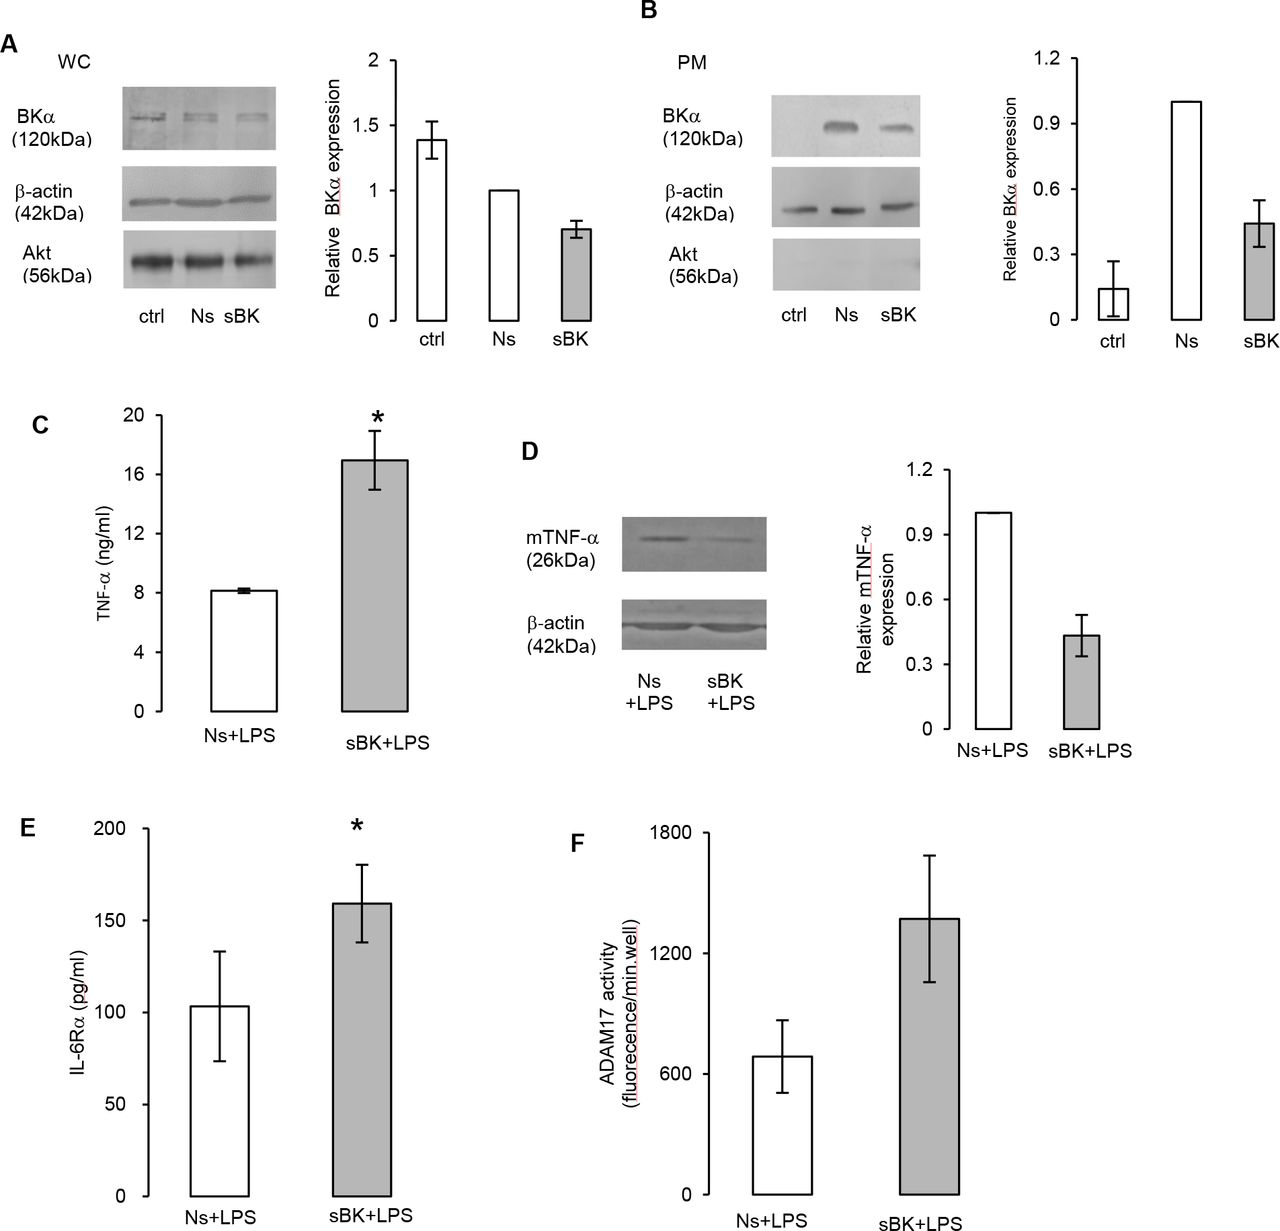 BK channel silencing increased <t>ADAM17</t> activity and enhanced secretion of TNF-α and IL-6Rα.. ( A ) ( B ) Western blot analysis of whole cell and plasma membrane proteins from siRNA treated macrophages. The cells were non-treated (ctrl), received non-silencing siRNA (Ns) or silencing siRNA for BKα genes (sBK) for 72 hours. BKα silencing effect in ( A ) whole cell (WC) and ( B ) plasma membrane (PM) lysate. Densitometry analysis of BKα expression in BKα silenced cells relative to non-silencing siRNA. Mean+/−SEM (n=3). ( C )-( F )After treatment with siRNAs, macrophages were activated with 150 ng/ml LPS for 4 hours. ( C ) TNF-α and ( E ) IL-6Rα release was analyzed by ELISA. Mean+/−SEM (n=4). ( D ) Western blot analysis of mTNF-α expression. Densitometry of mTNF-α expression in BKα silenced cells relative to non-silencing siRNA. Mean+/−SEM (n=3). ( F ) ADAM17 activity in BKα silenced (sBK) macrophages. Mean+/−SEM (n=3). *p